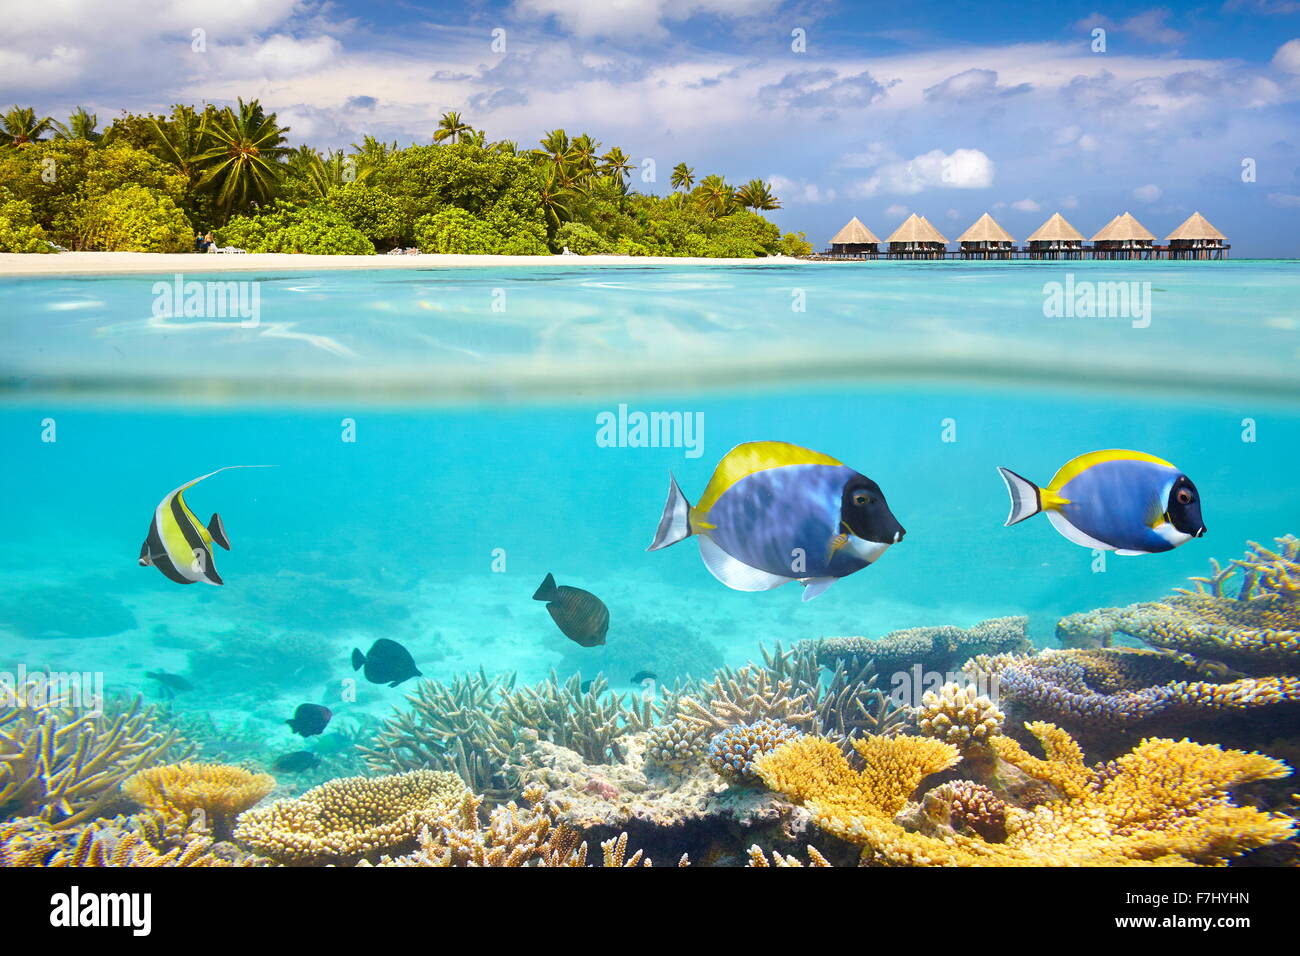 Maldives Island - underwater view with reef and fish Stock Photo